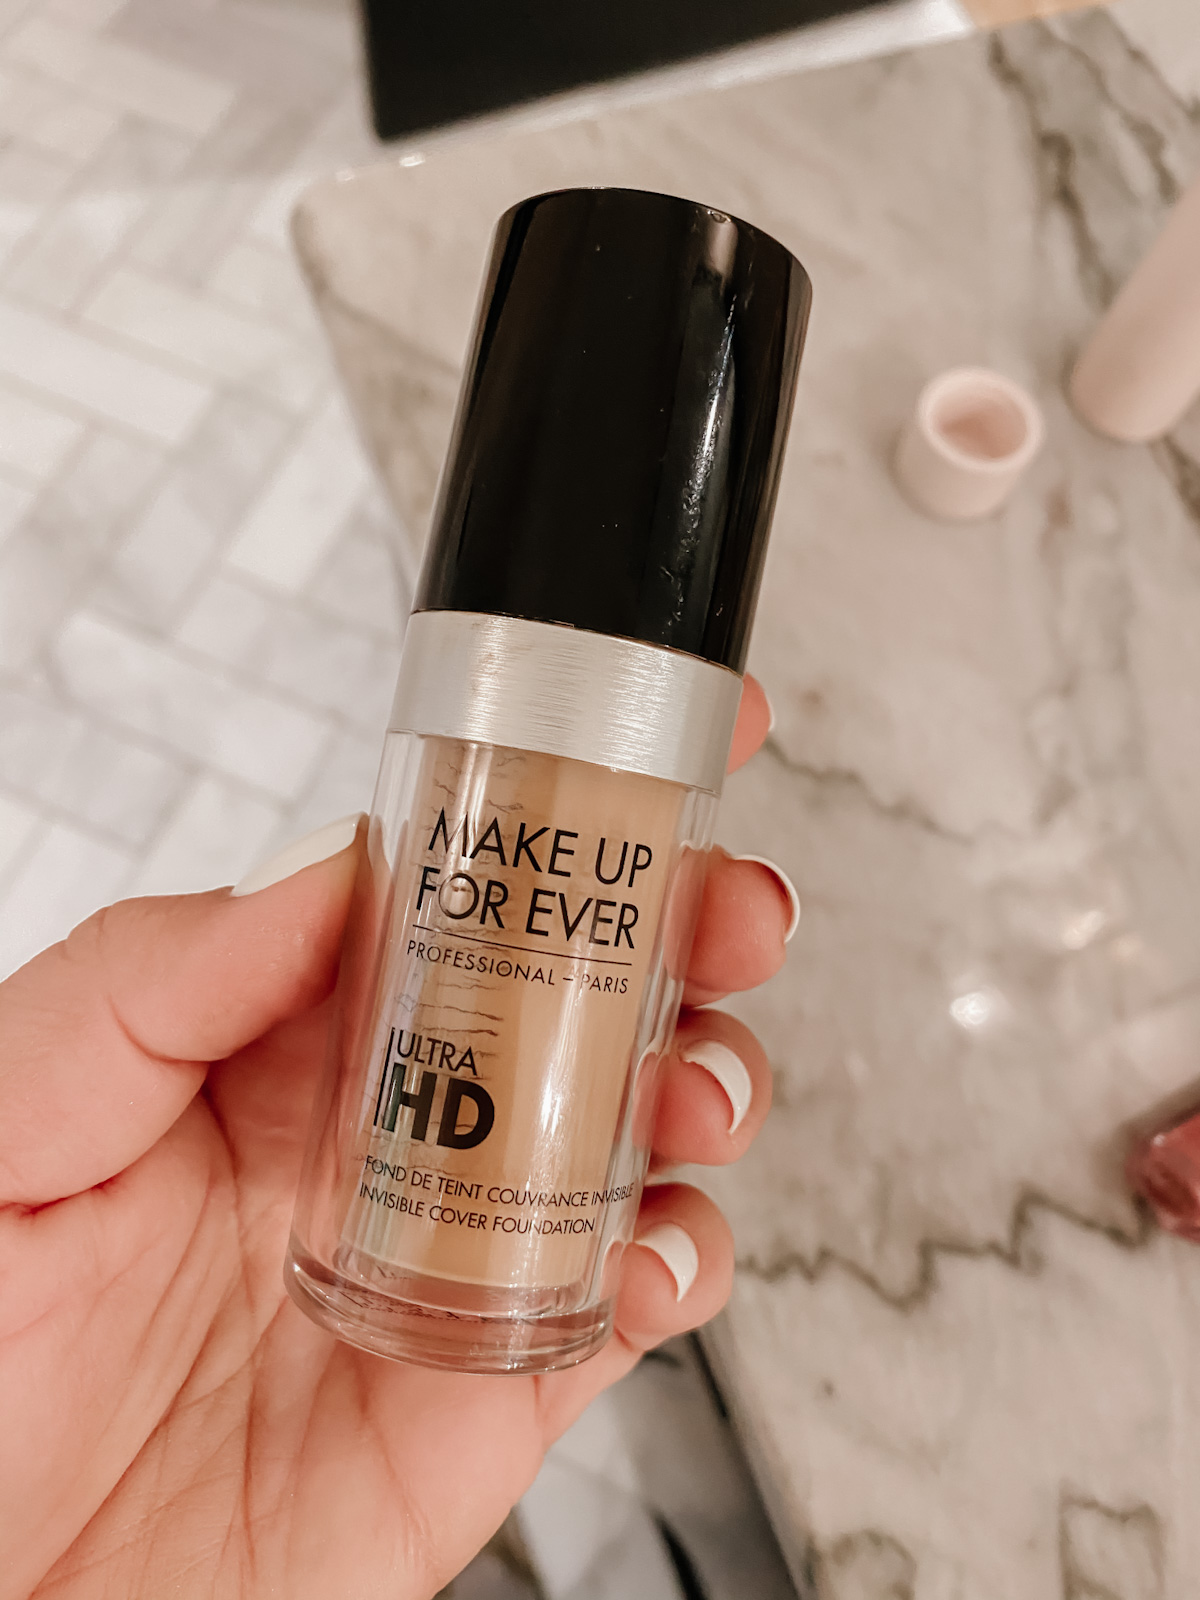 Beauty Empties - Makeup Forever Foundation